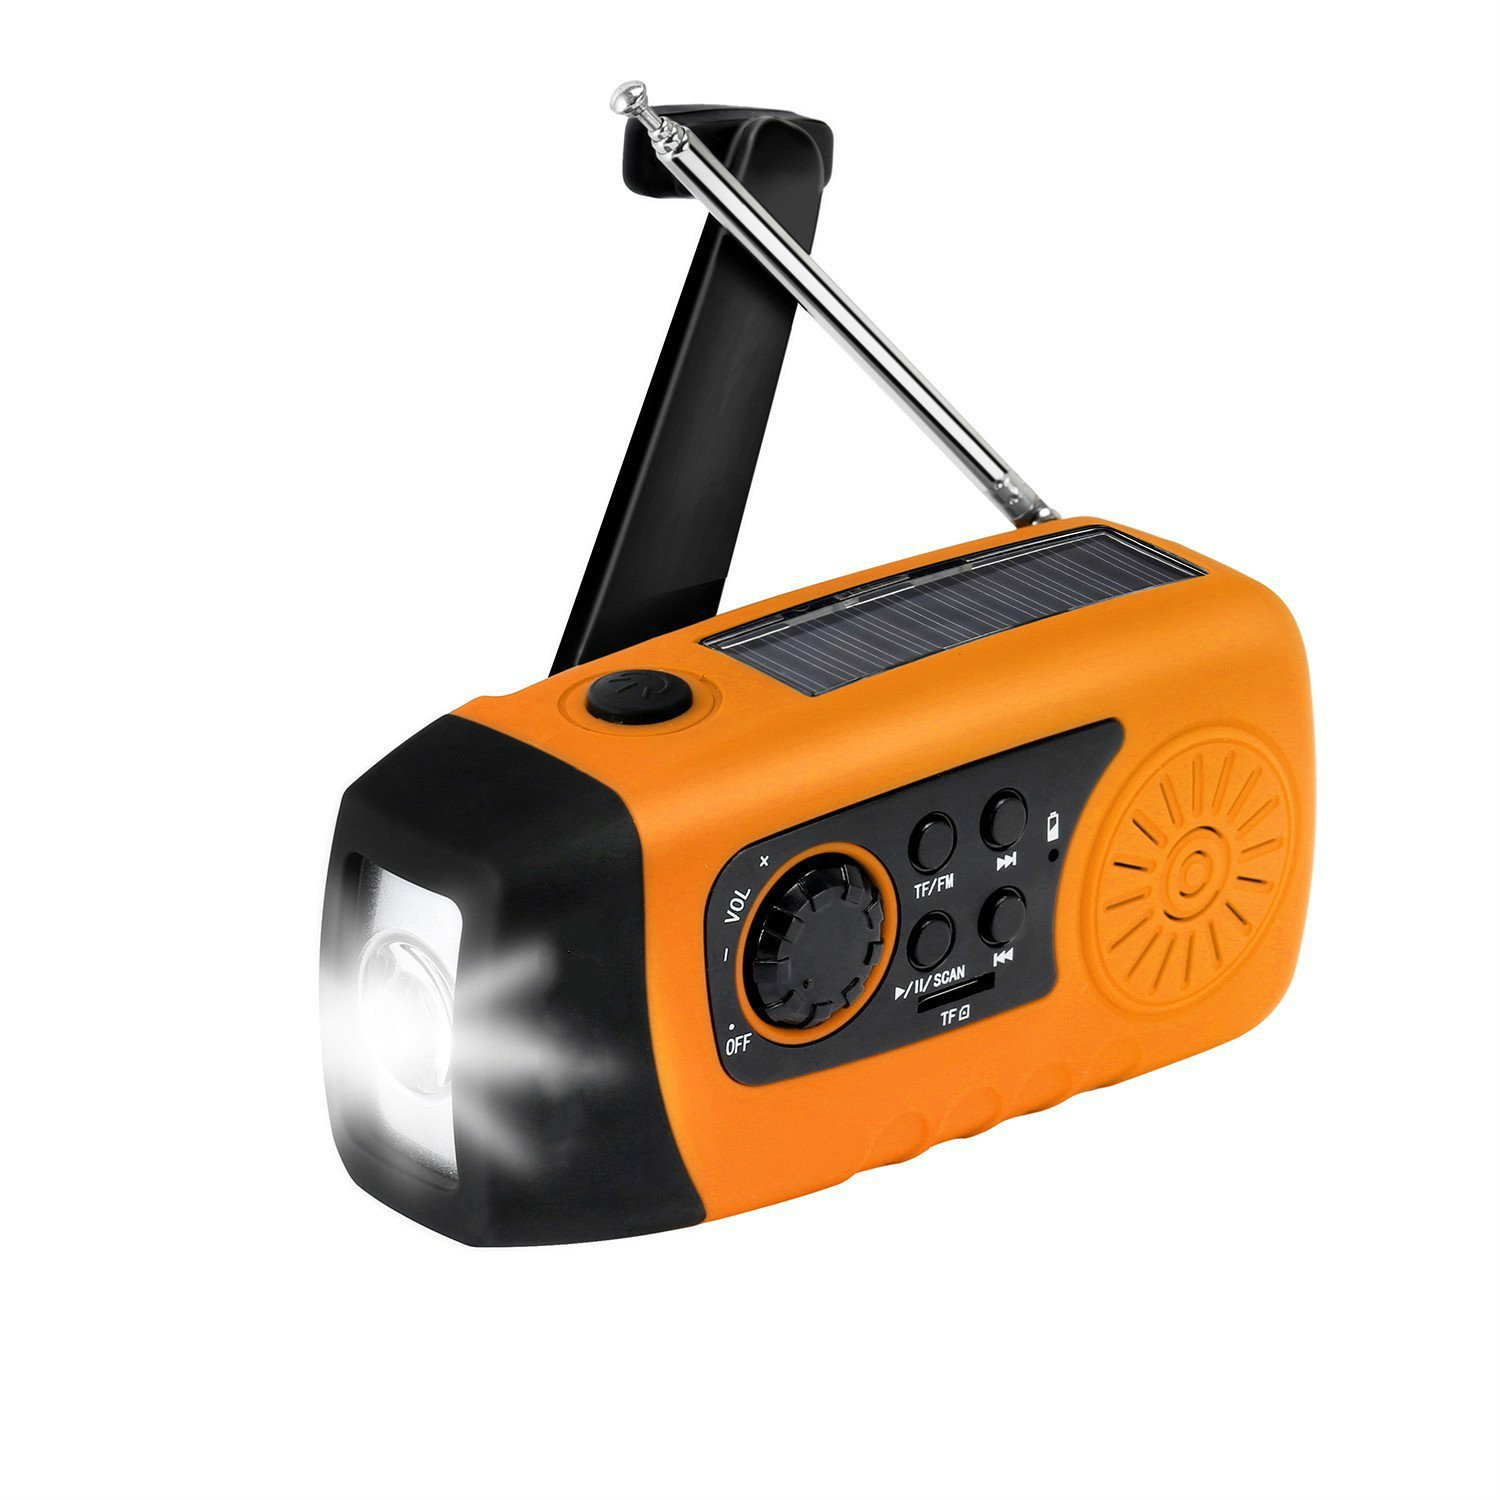 Emergency Solar Hand Crank FM Radio with LED Flashlight, 2000mAh Phone Charger, TF Card MP3 Player w/Cable